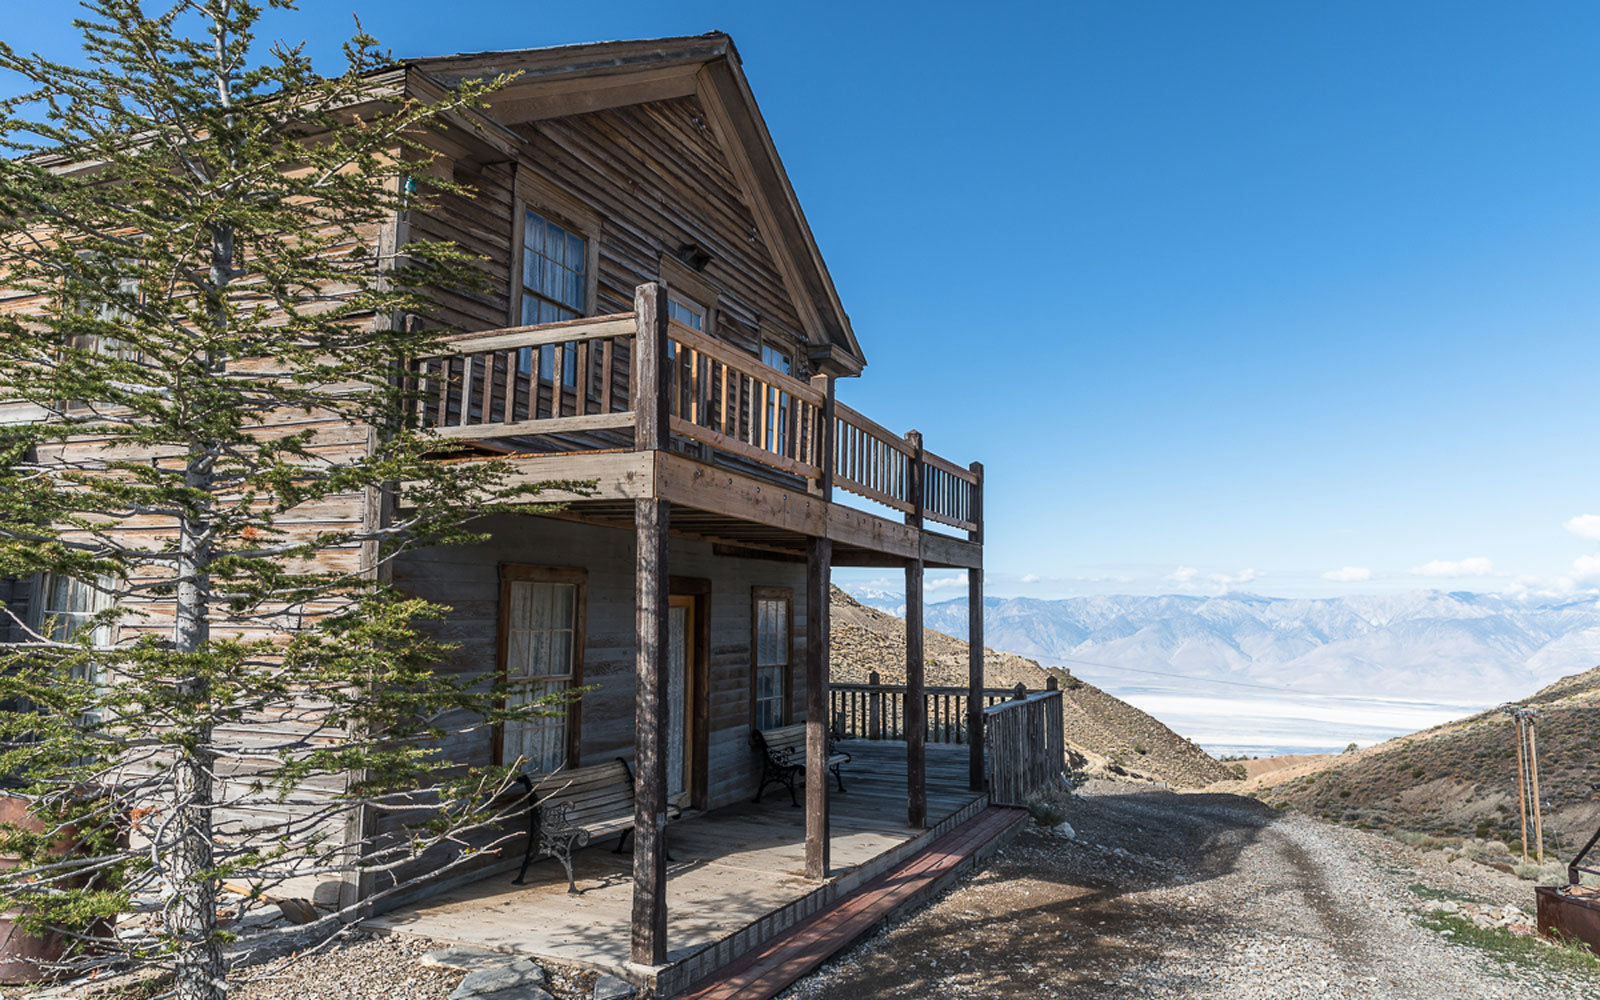 Own this entire ghost town south of Yosemite for under $1 million